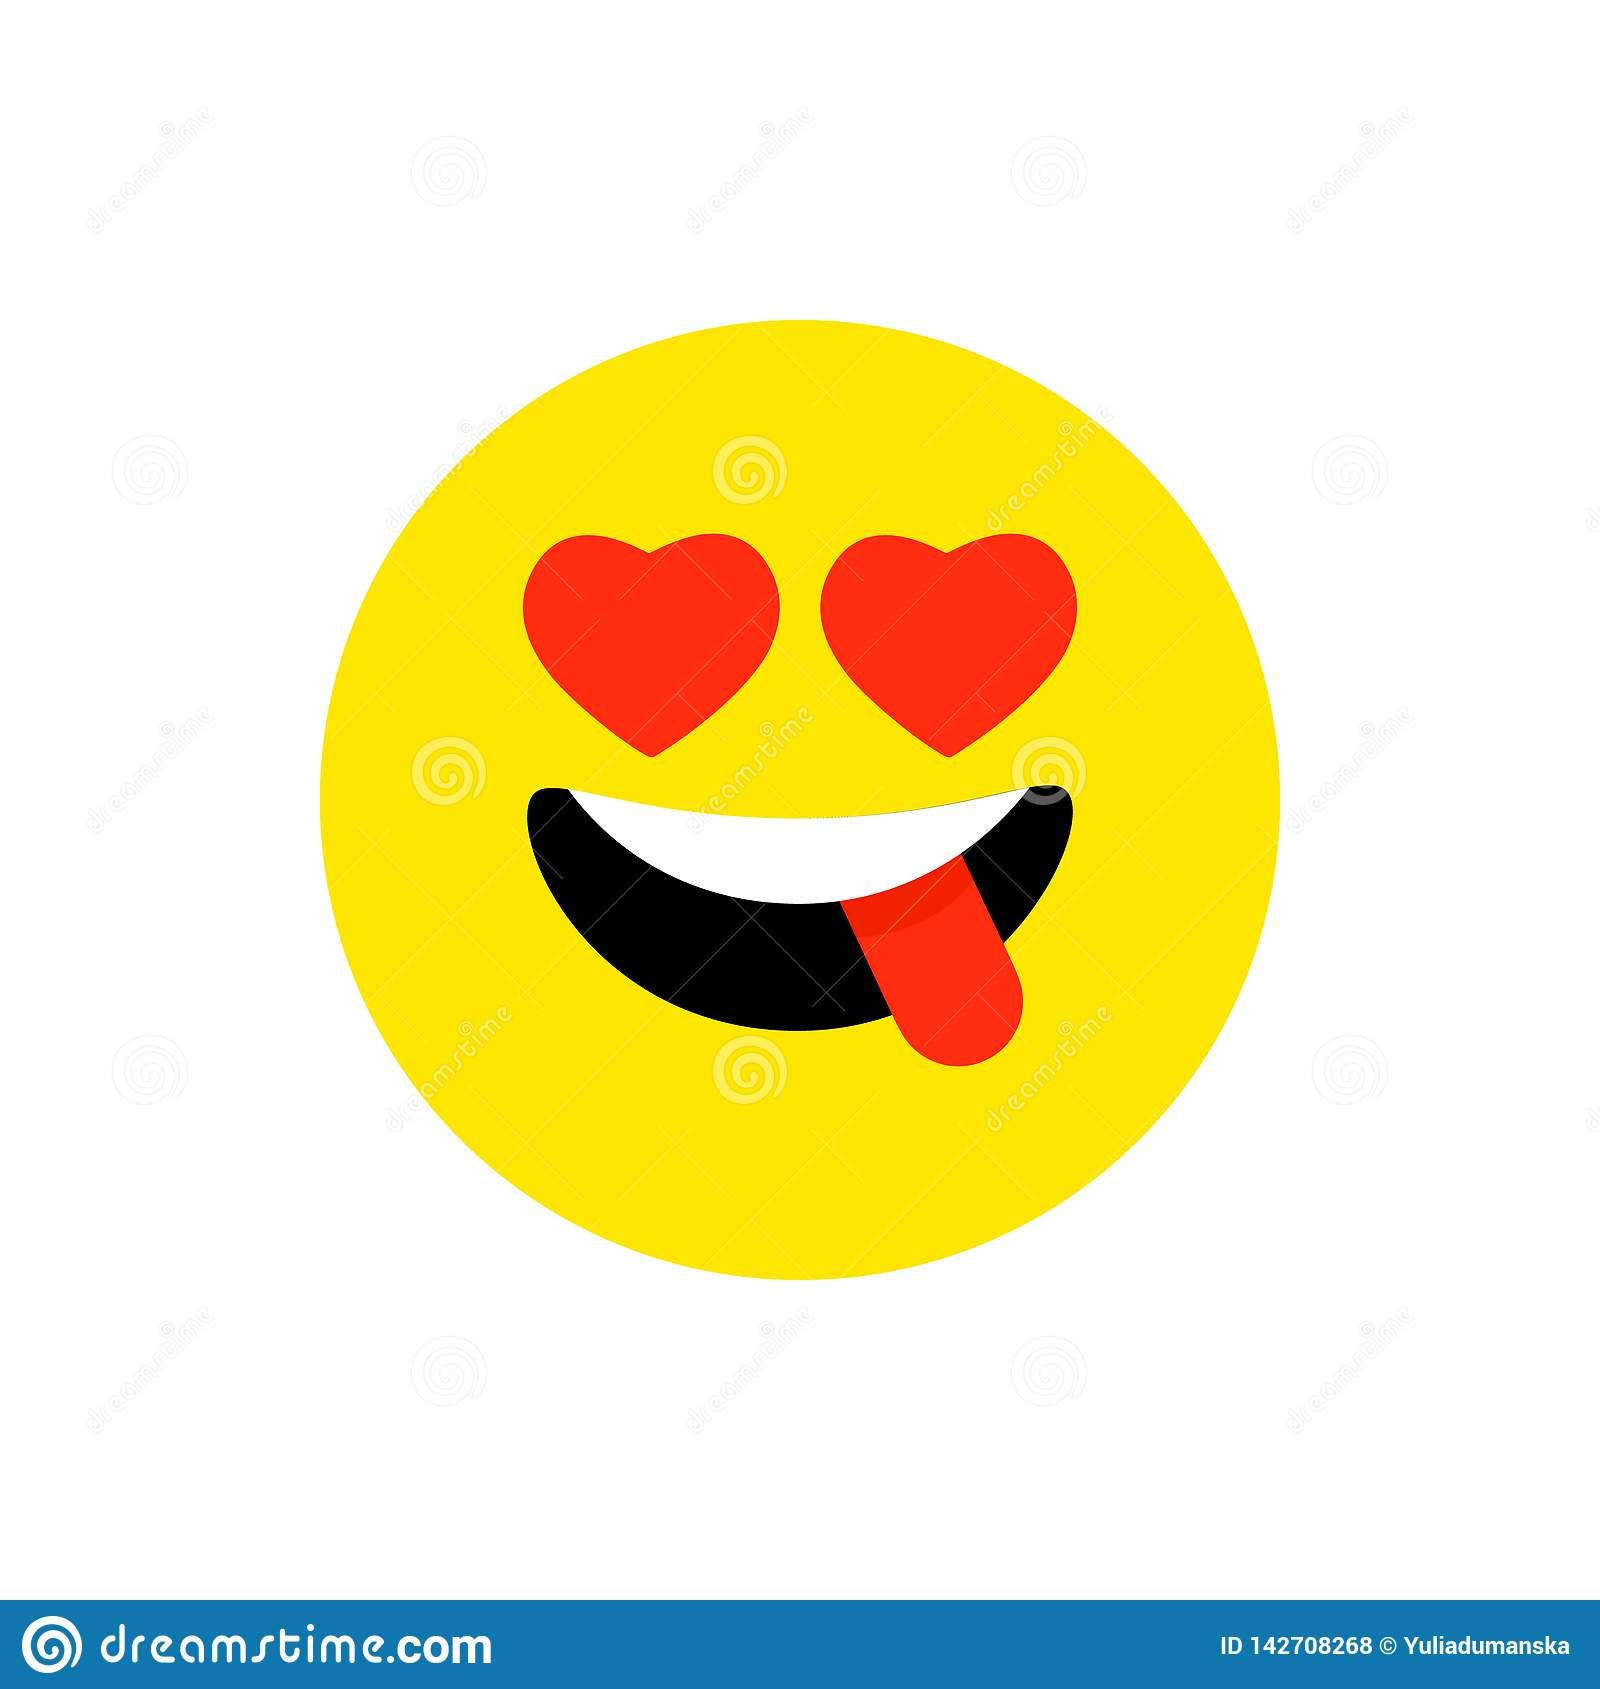 Happy face smiling emoji with open mouth. Funny Smile flat style. Cute Emoticon symbol. Smiley, laugh icon. For mobile